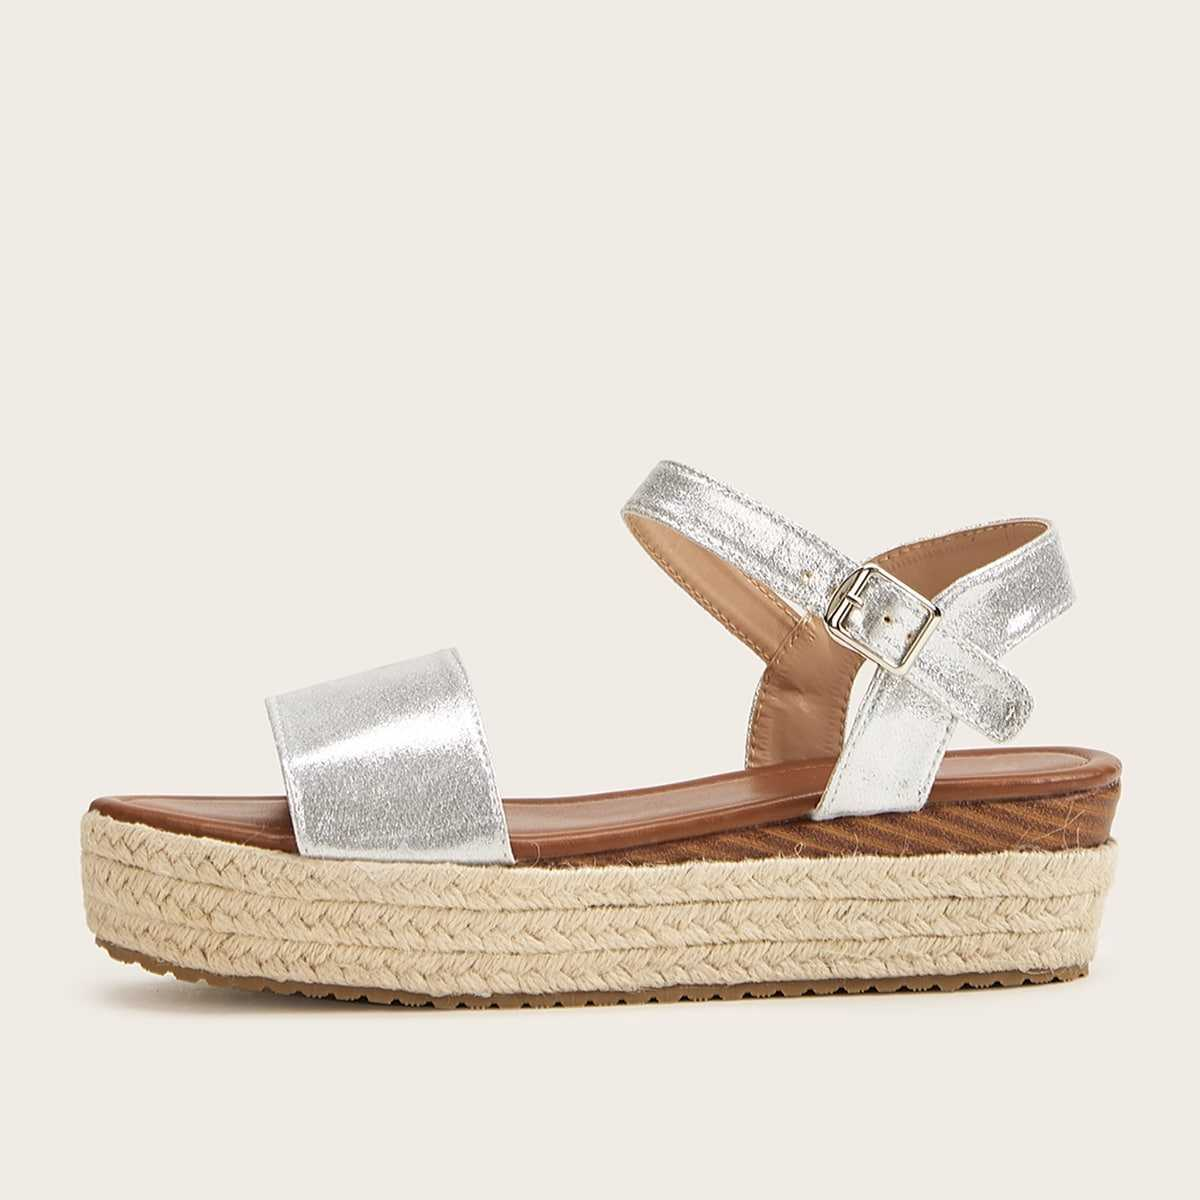 Metallic Buckle Strap Espadrille Wedges in Silver by ROMWE on GOOFASH